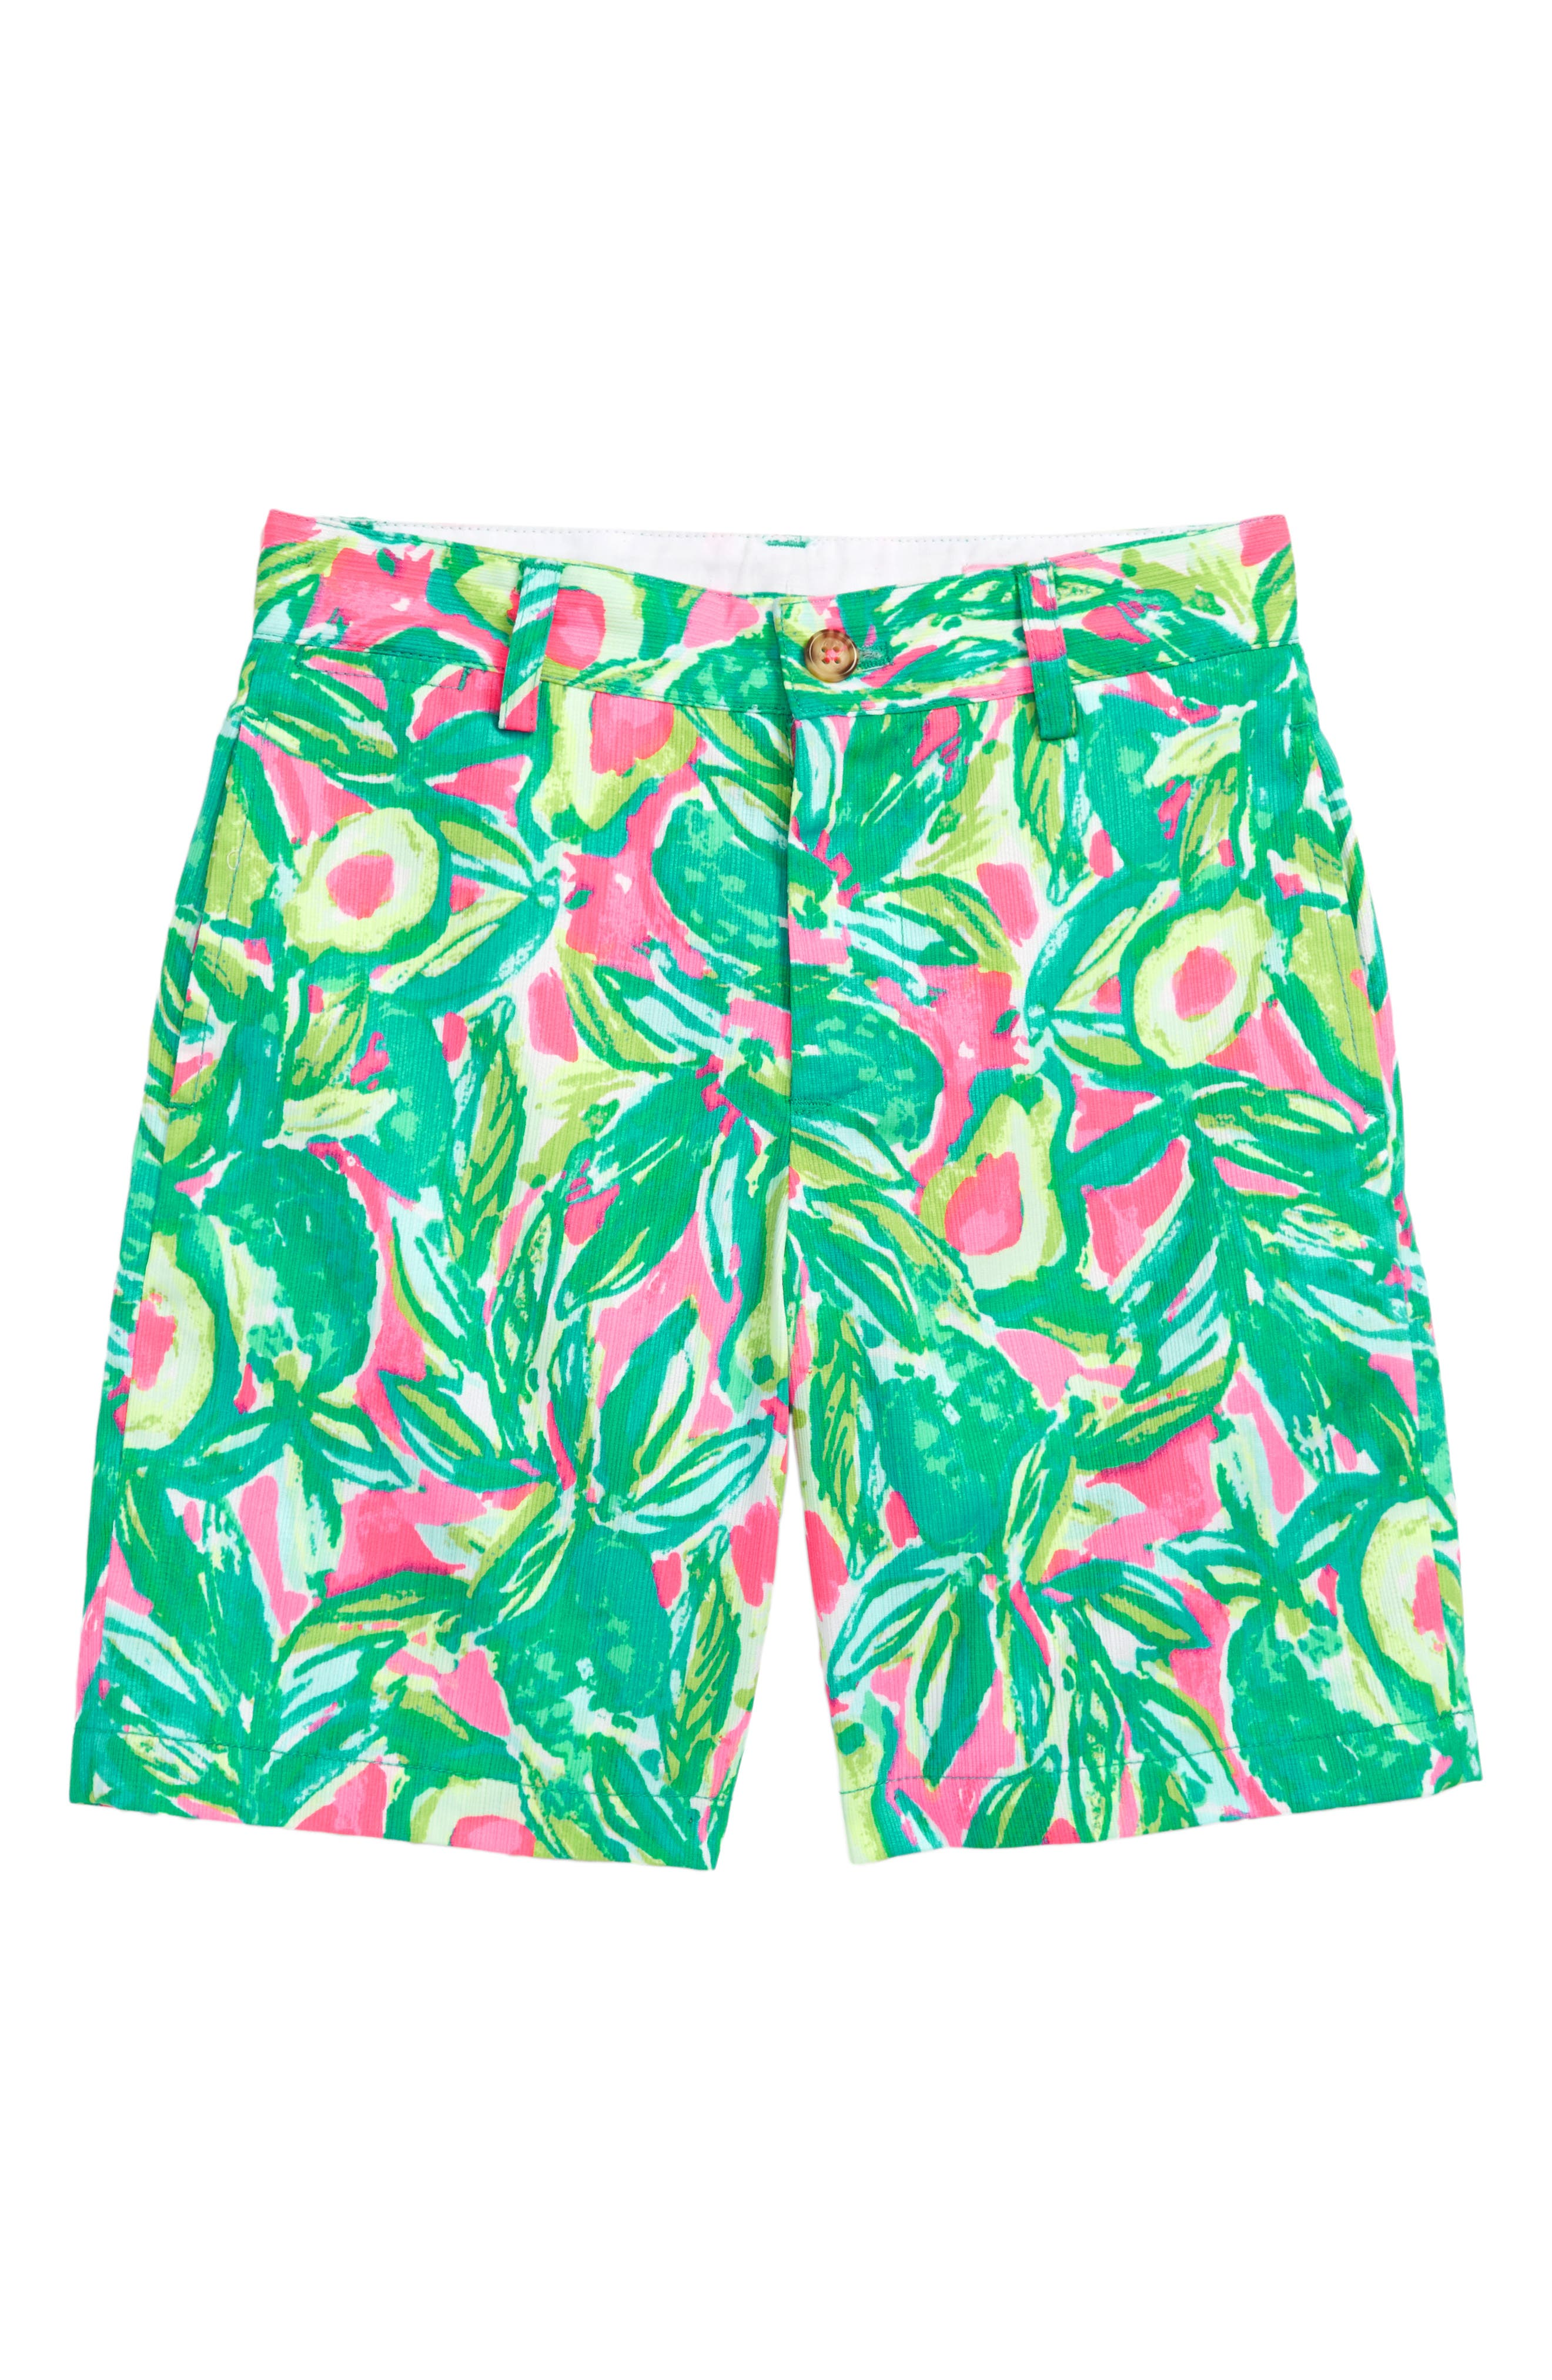 Lily Pulitzer Beaumont Print Shorts,                             Main thumbnail 1, color,                             Pink Sunset Guac And Roll